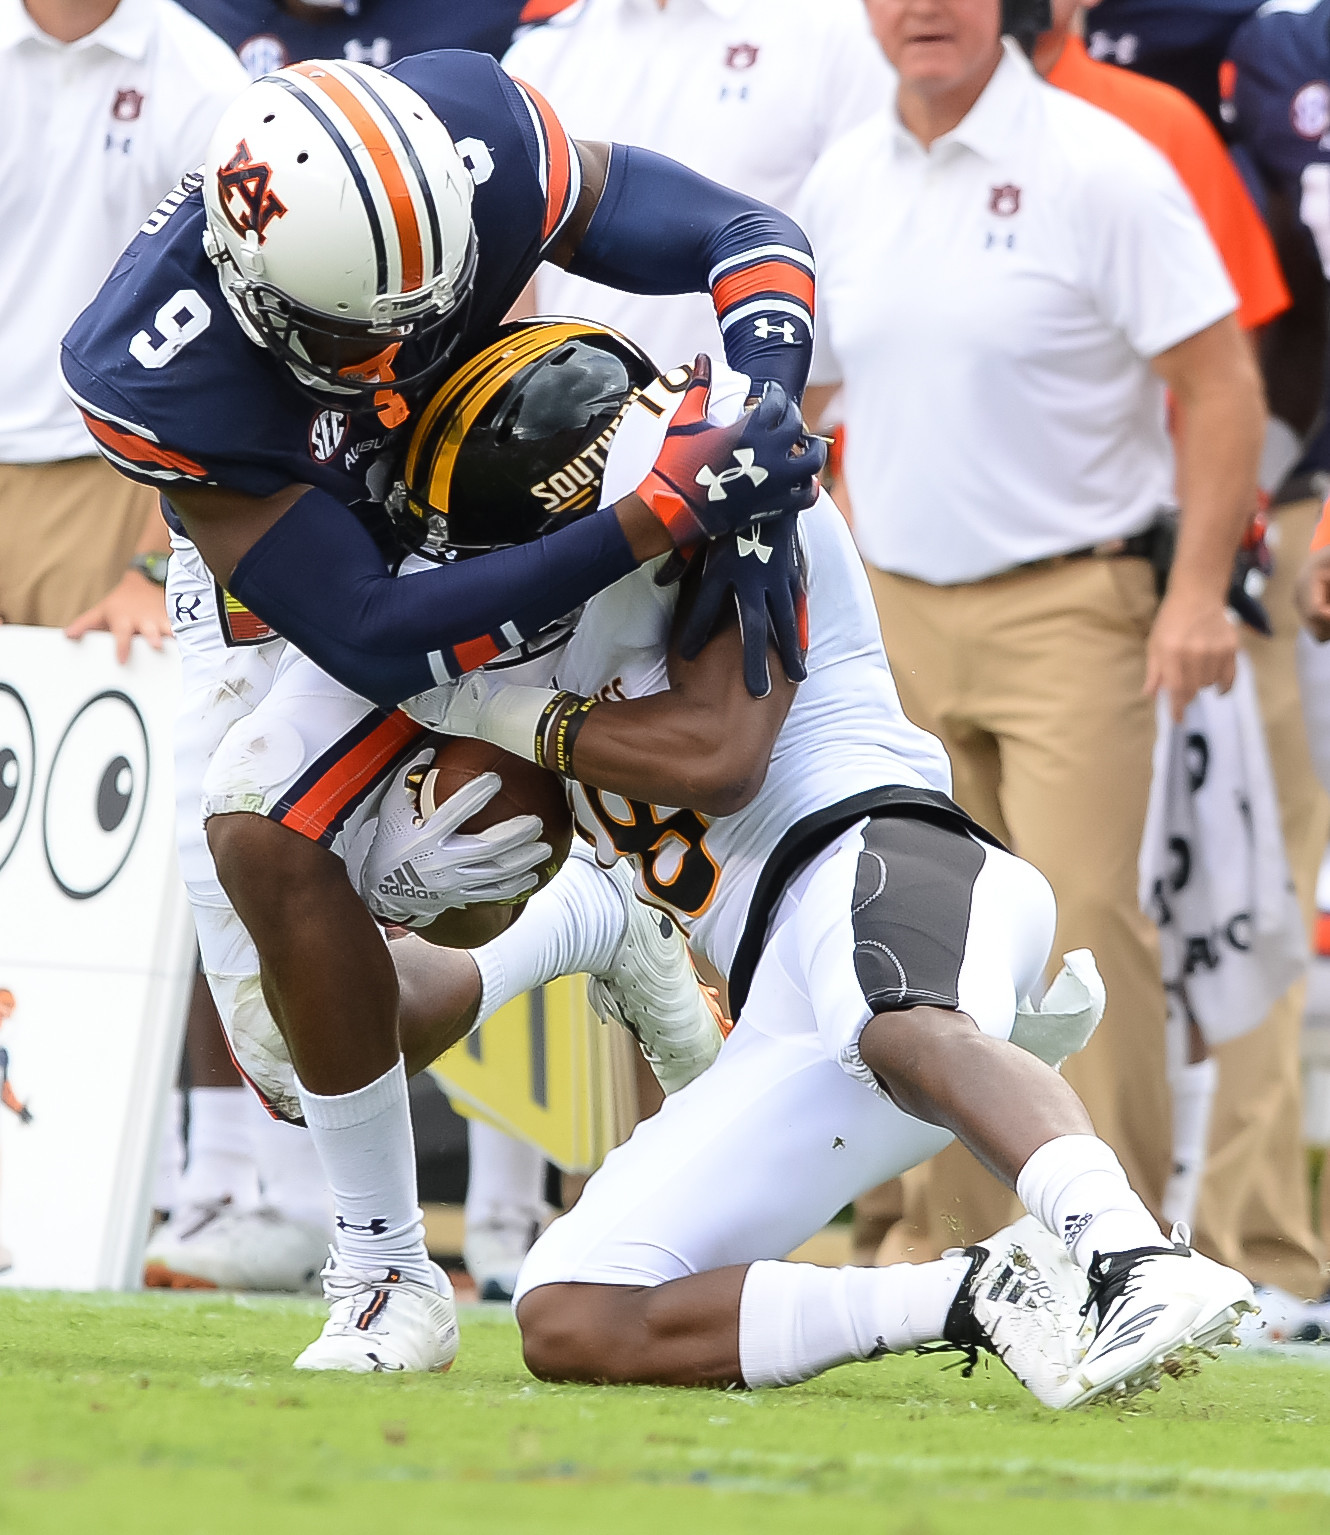 Auburn Tigers defensive back Jamien Sherwood (9) tackles Southern Miss Golden Eagles wide receiver De'Michael Harris (18) during the first half of Saturday's game, at Jordan Hare Stadium in Auburn AL. Daily Mountain Eagle -  Jeff Johnsey